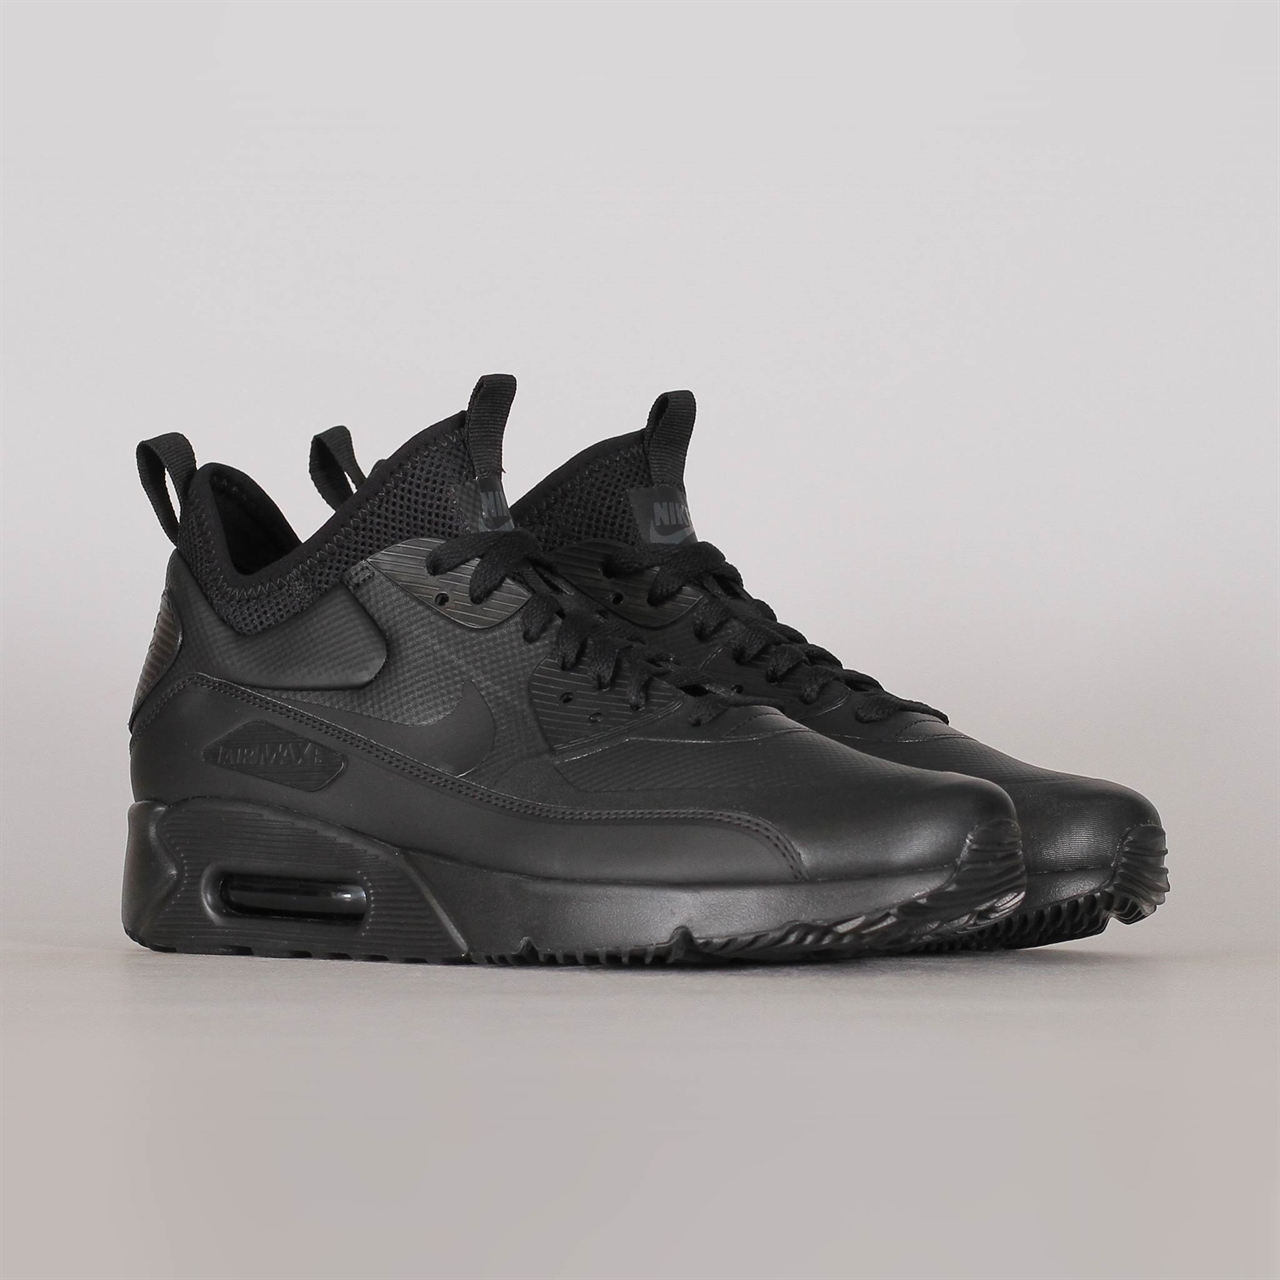 cce31090a8 Nike Air Max 90 Ultra Mid Winter (924458-004) - Shelta